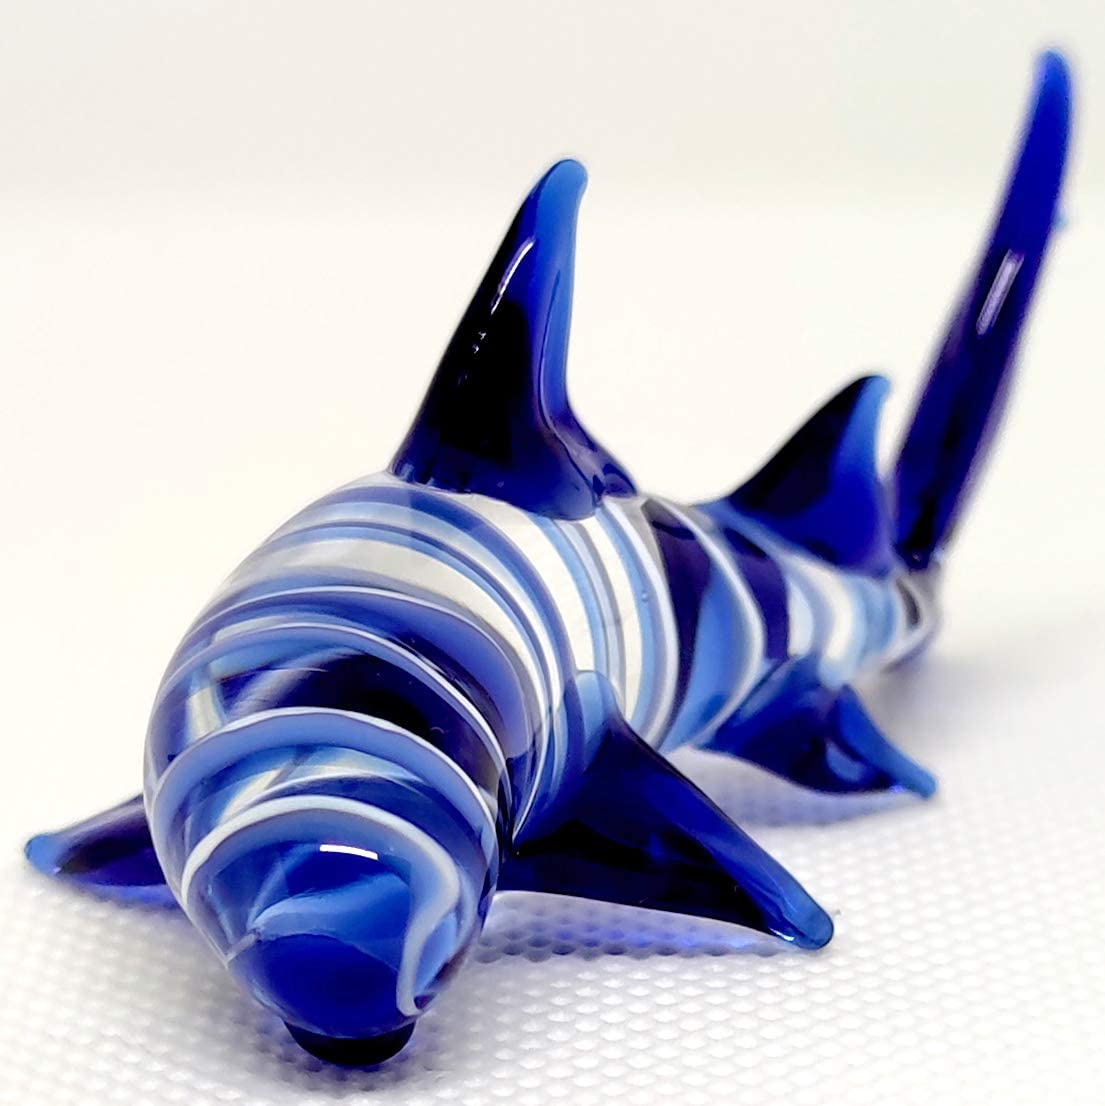 Sansukjai Shark Miniature Figurines Animals Hand Blown Glass Art Collectible Gift Decorate, White Blue